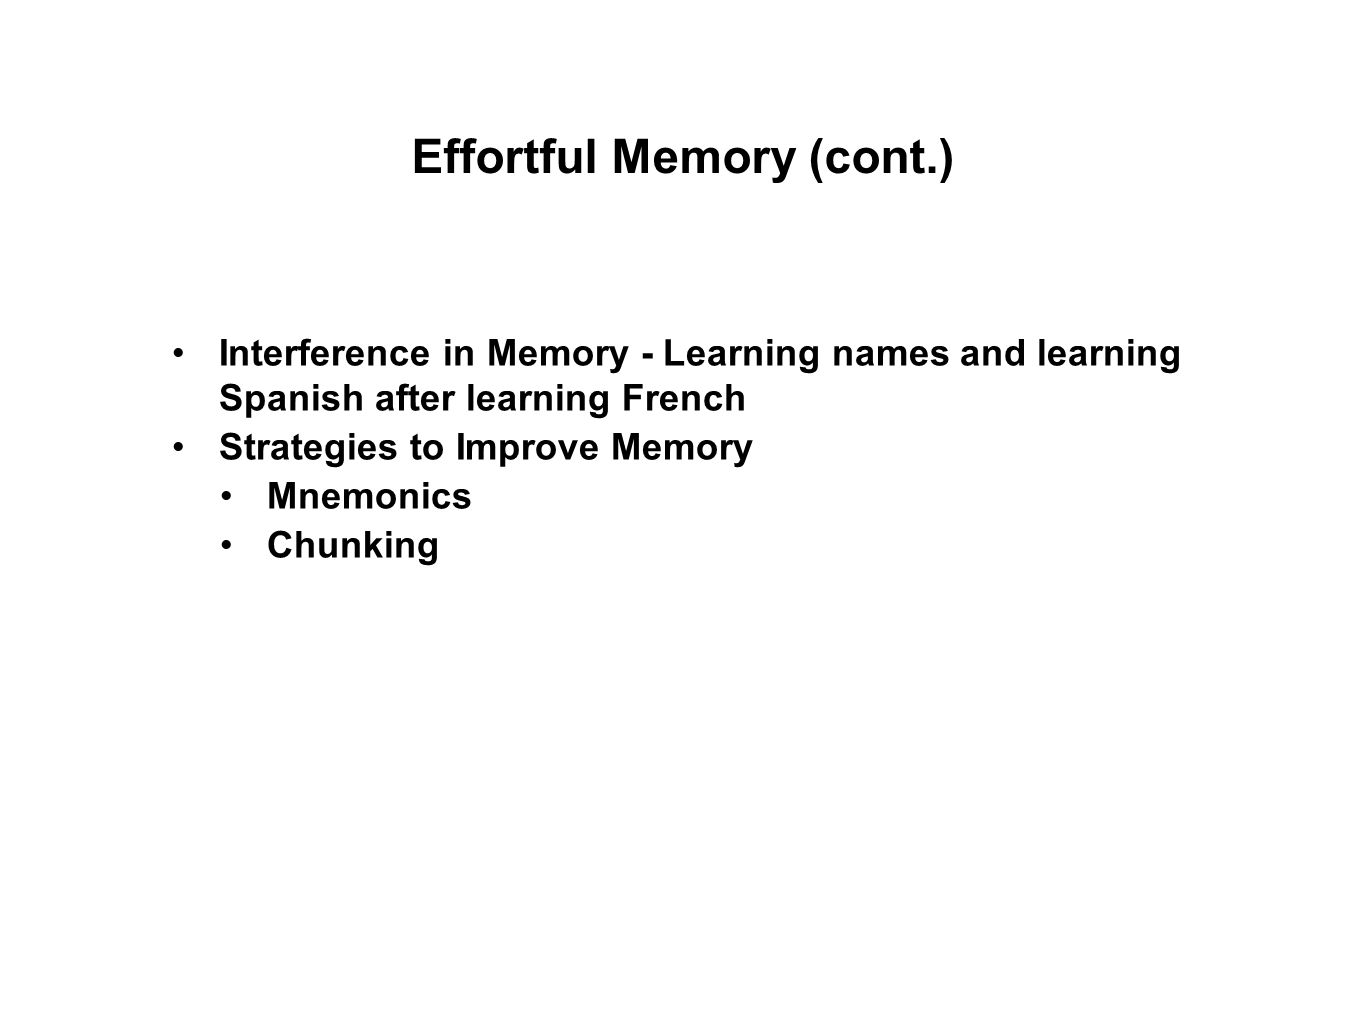 Strategies to Improve Memory Mnemonics Chunking Effortful Memory (cont.)